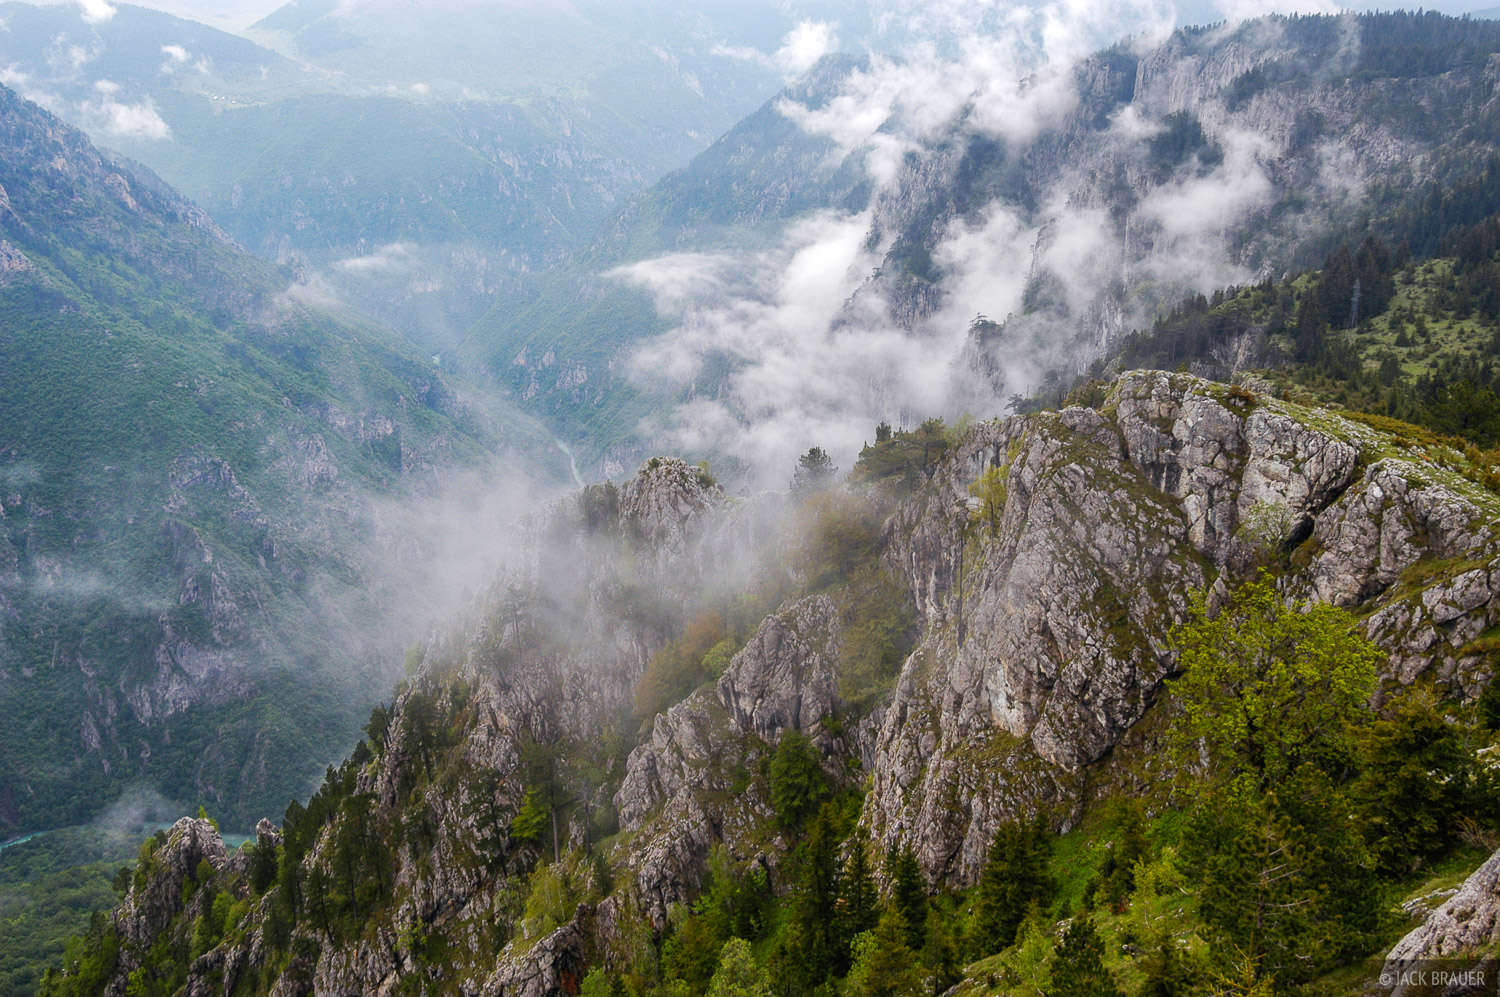 Looking down into Tara Canyon - at 1,300 meters (4,265 ft.) at it's deepest, it is the deepest canyon in Europe.